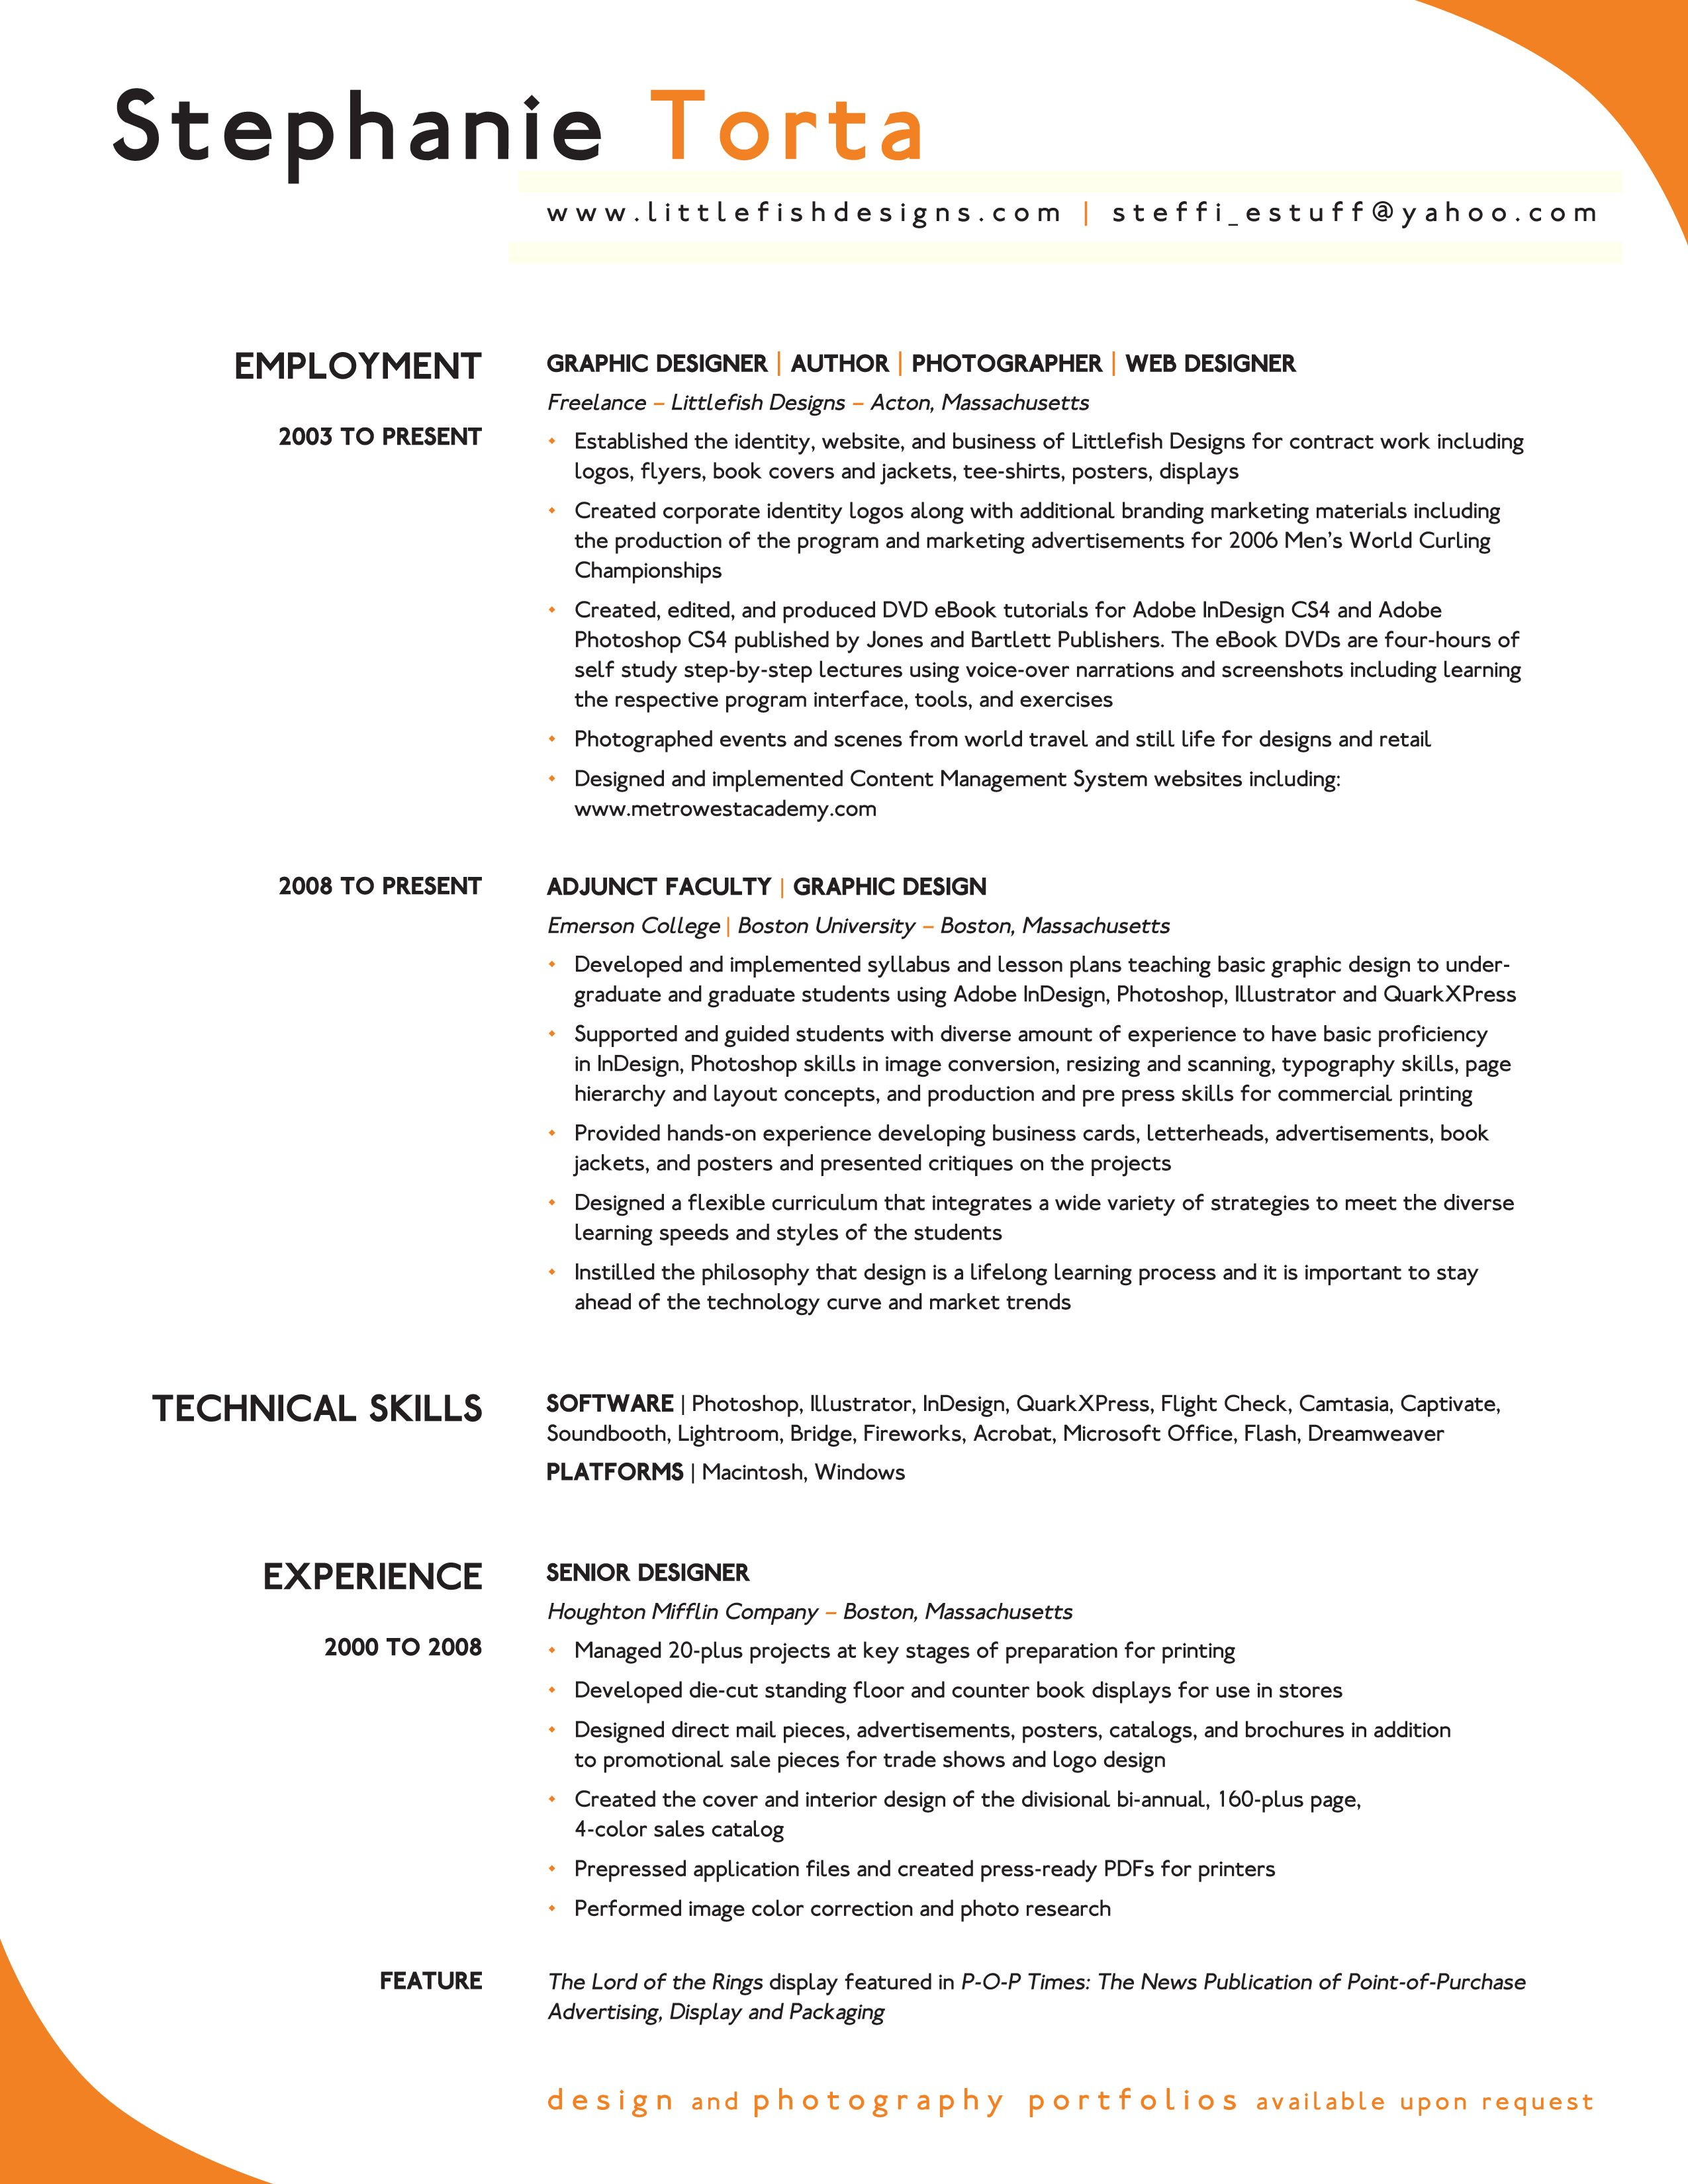 stephanie_torta cv_p1jpg 25503300 - Example Of A Perfect Resume